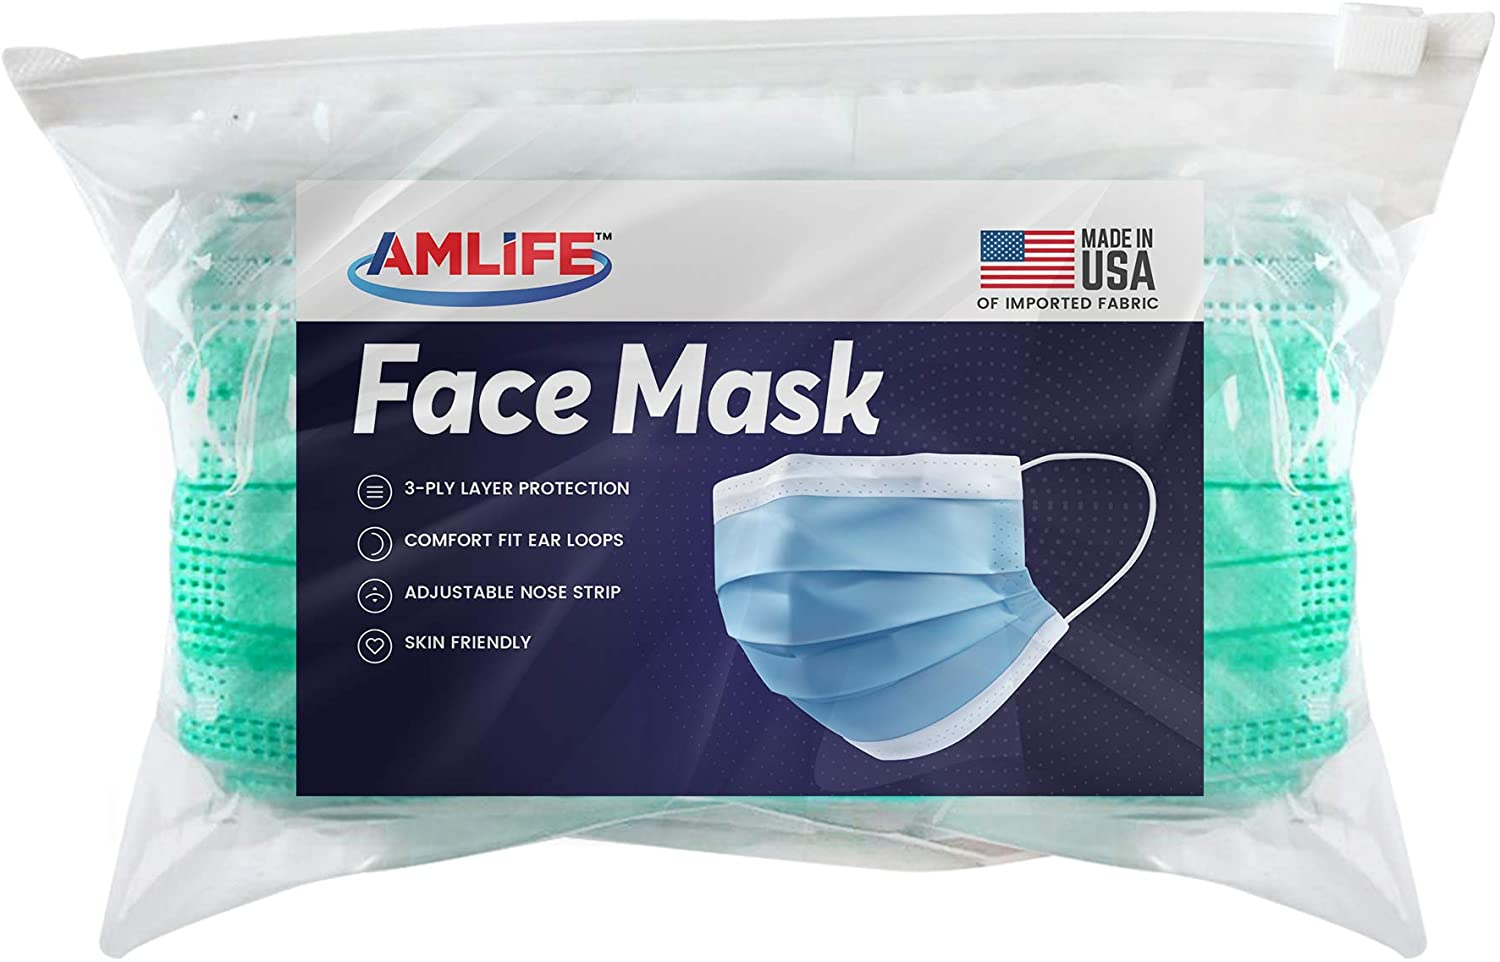 AMLIFE Face Masks [100 Pieces Pack] Disposable Protective 3-Ply Filter - Made in USA with Imported Fabric - Convenient Zipper Bag - Green